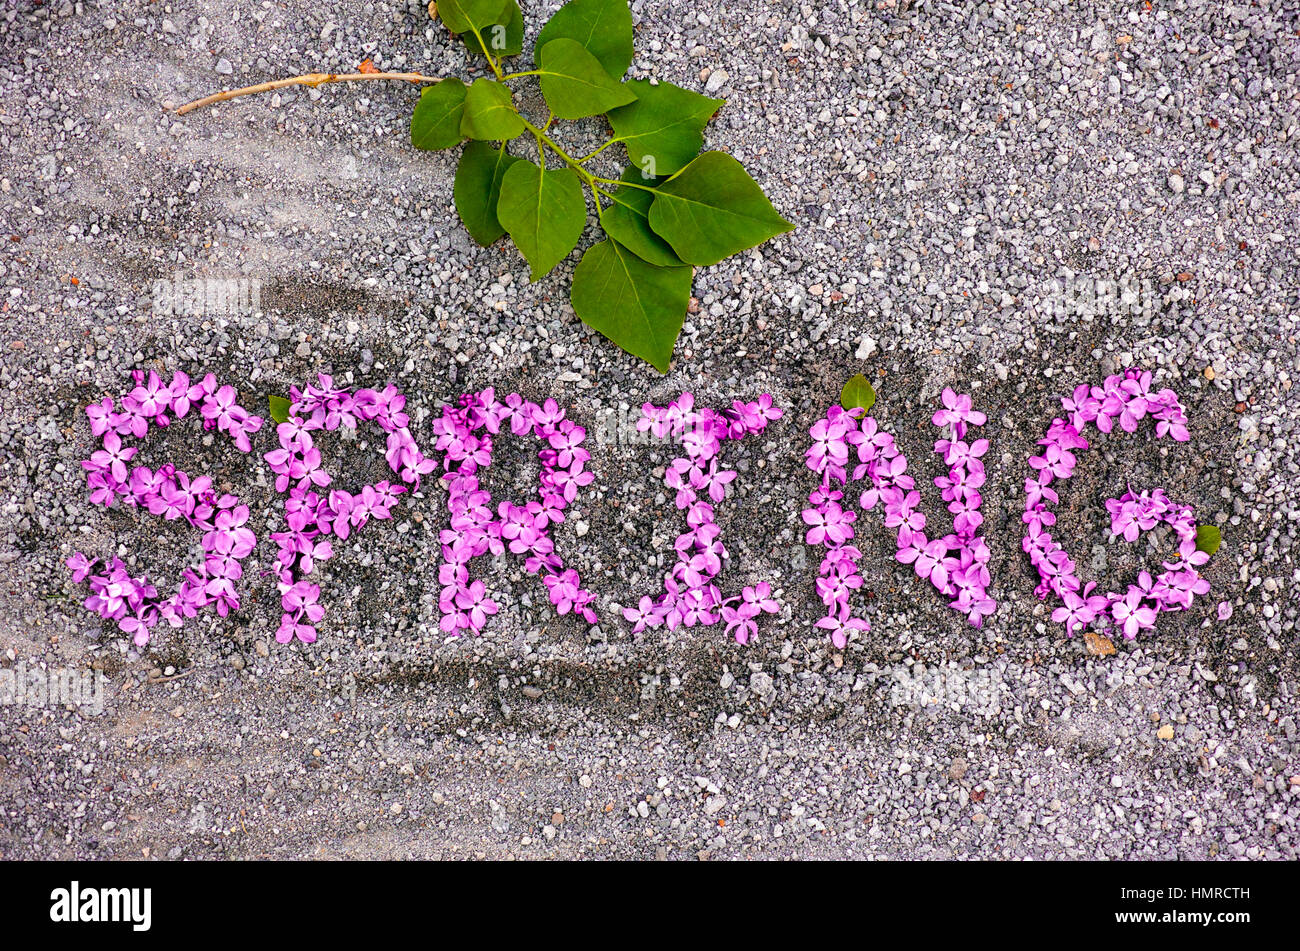 Word Spring spell out from magenta lilac flowers on the ground - Stock Image